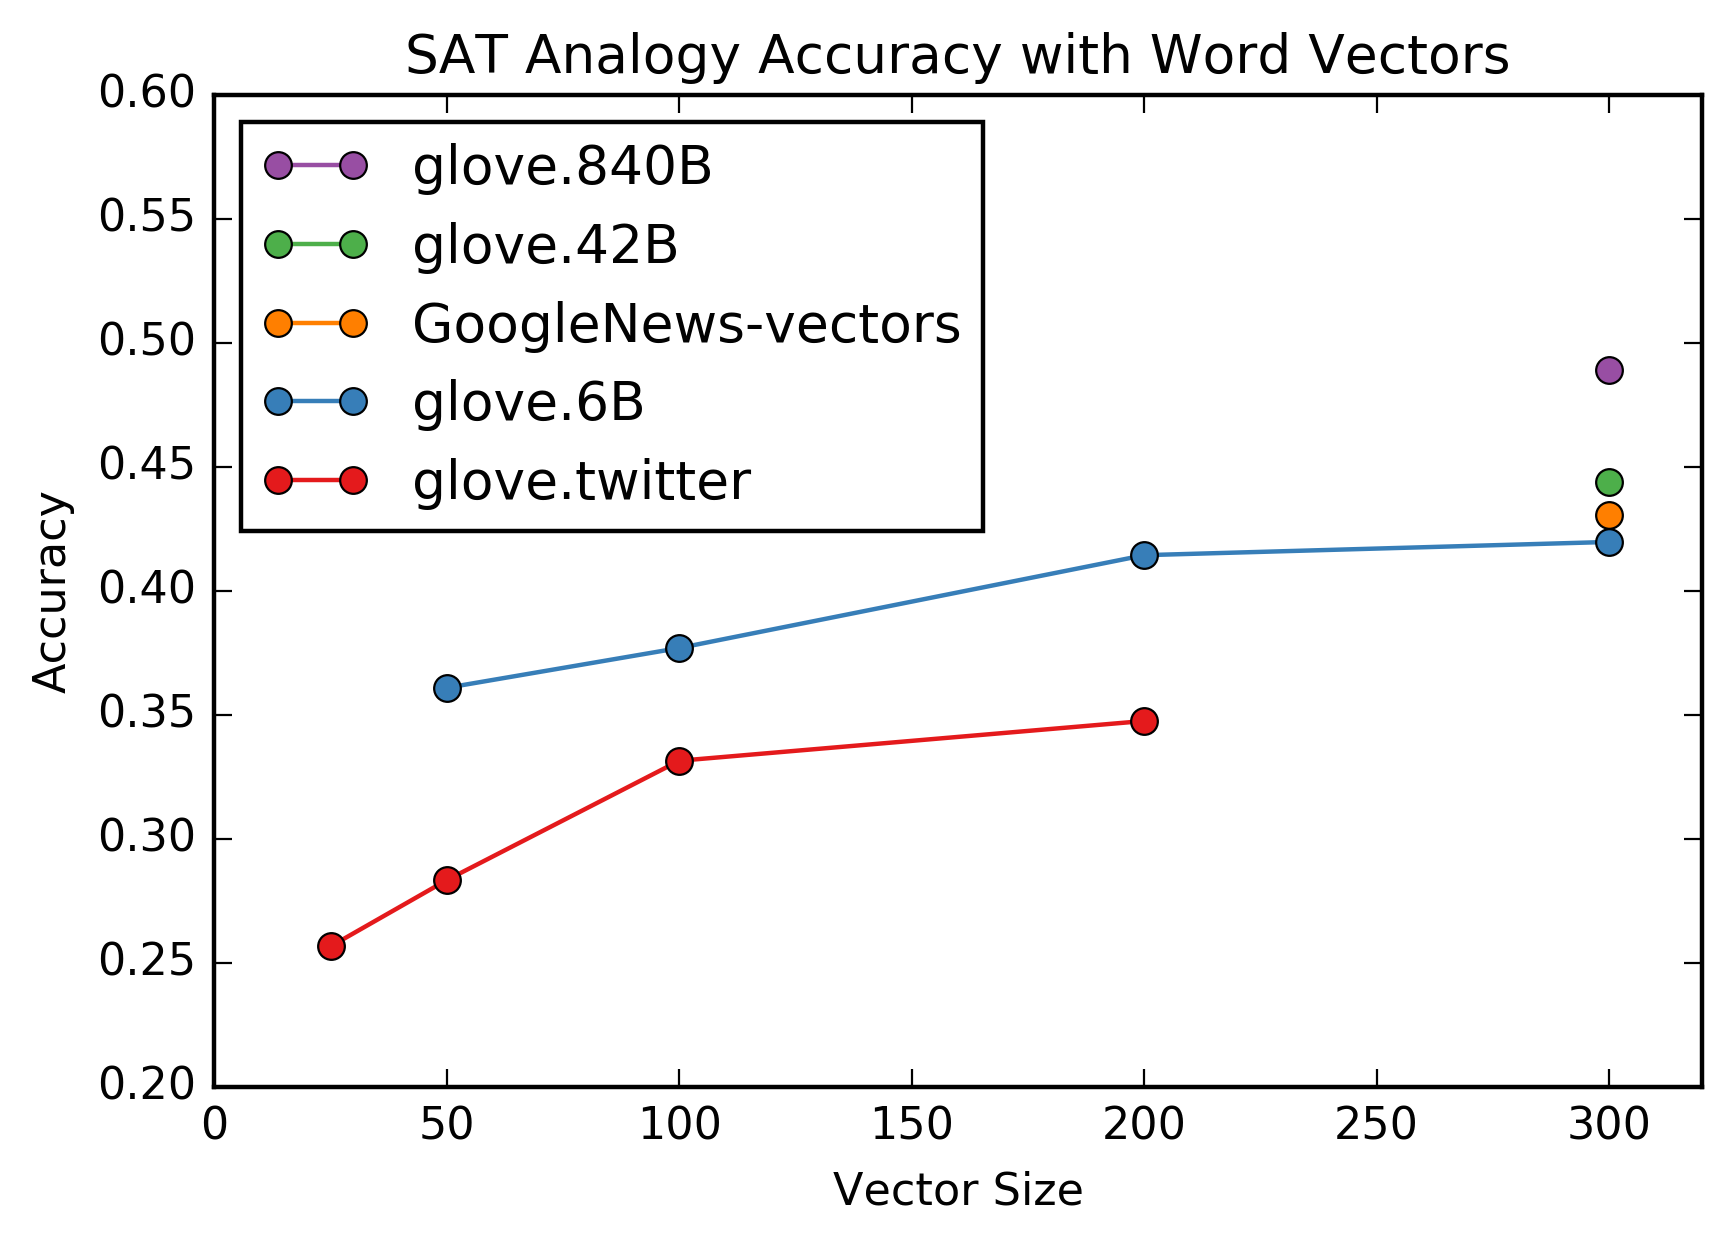 Word Vectors And Sat Analogies